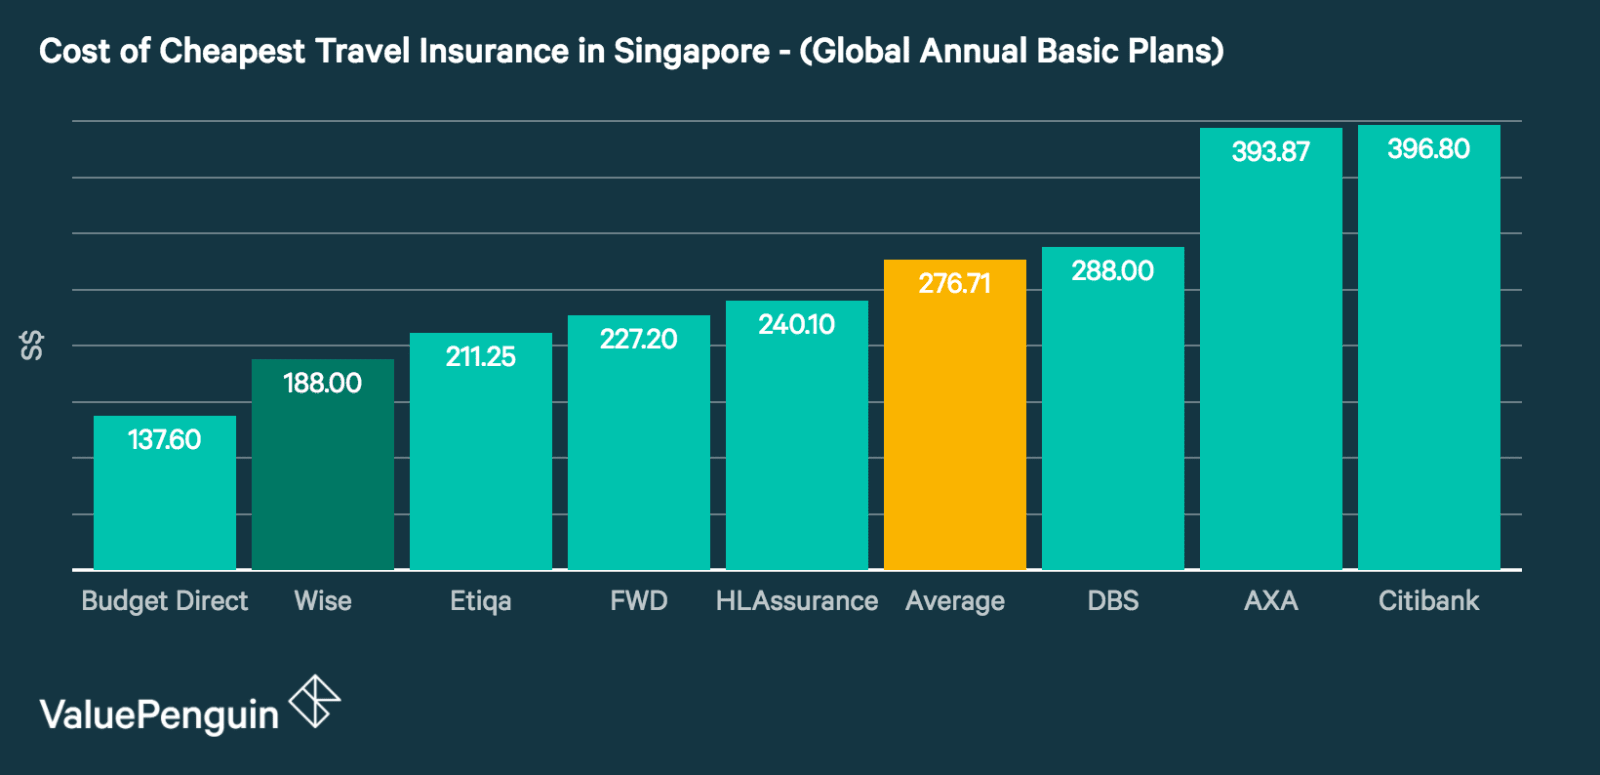 Cost of cheapest travel insurance premiums in Singapore for annual global plans